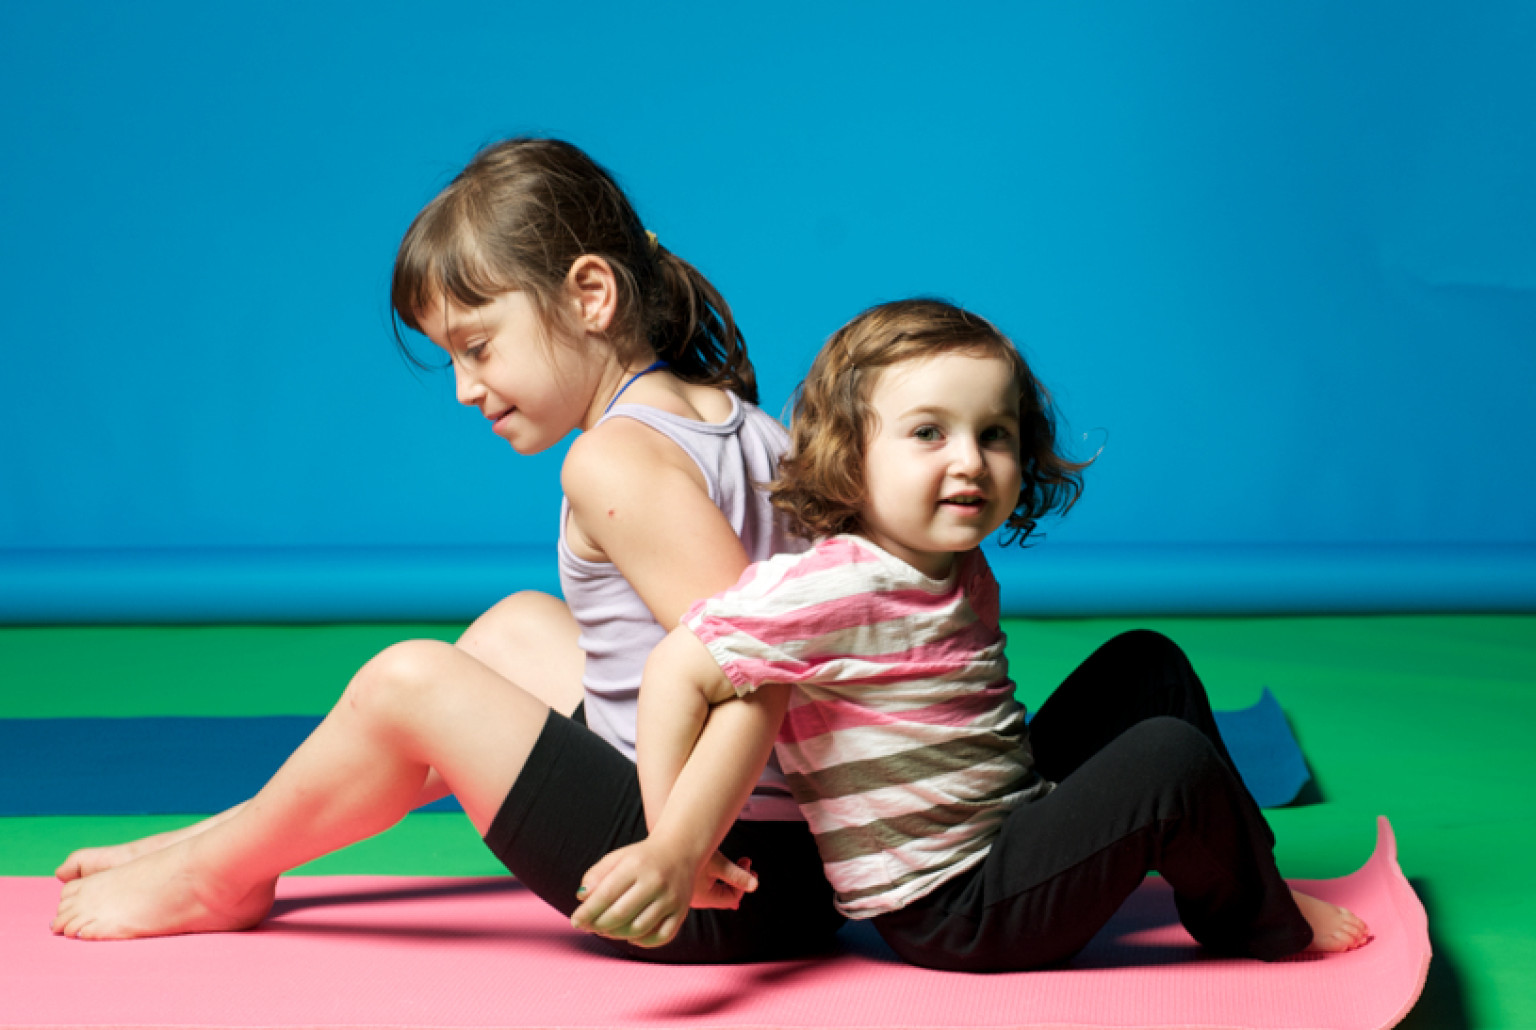 Kids Yoga Poses Are Just As Effective The Grown Up Versions But Cuter PHOTOS